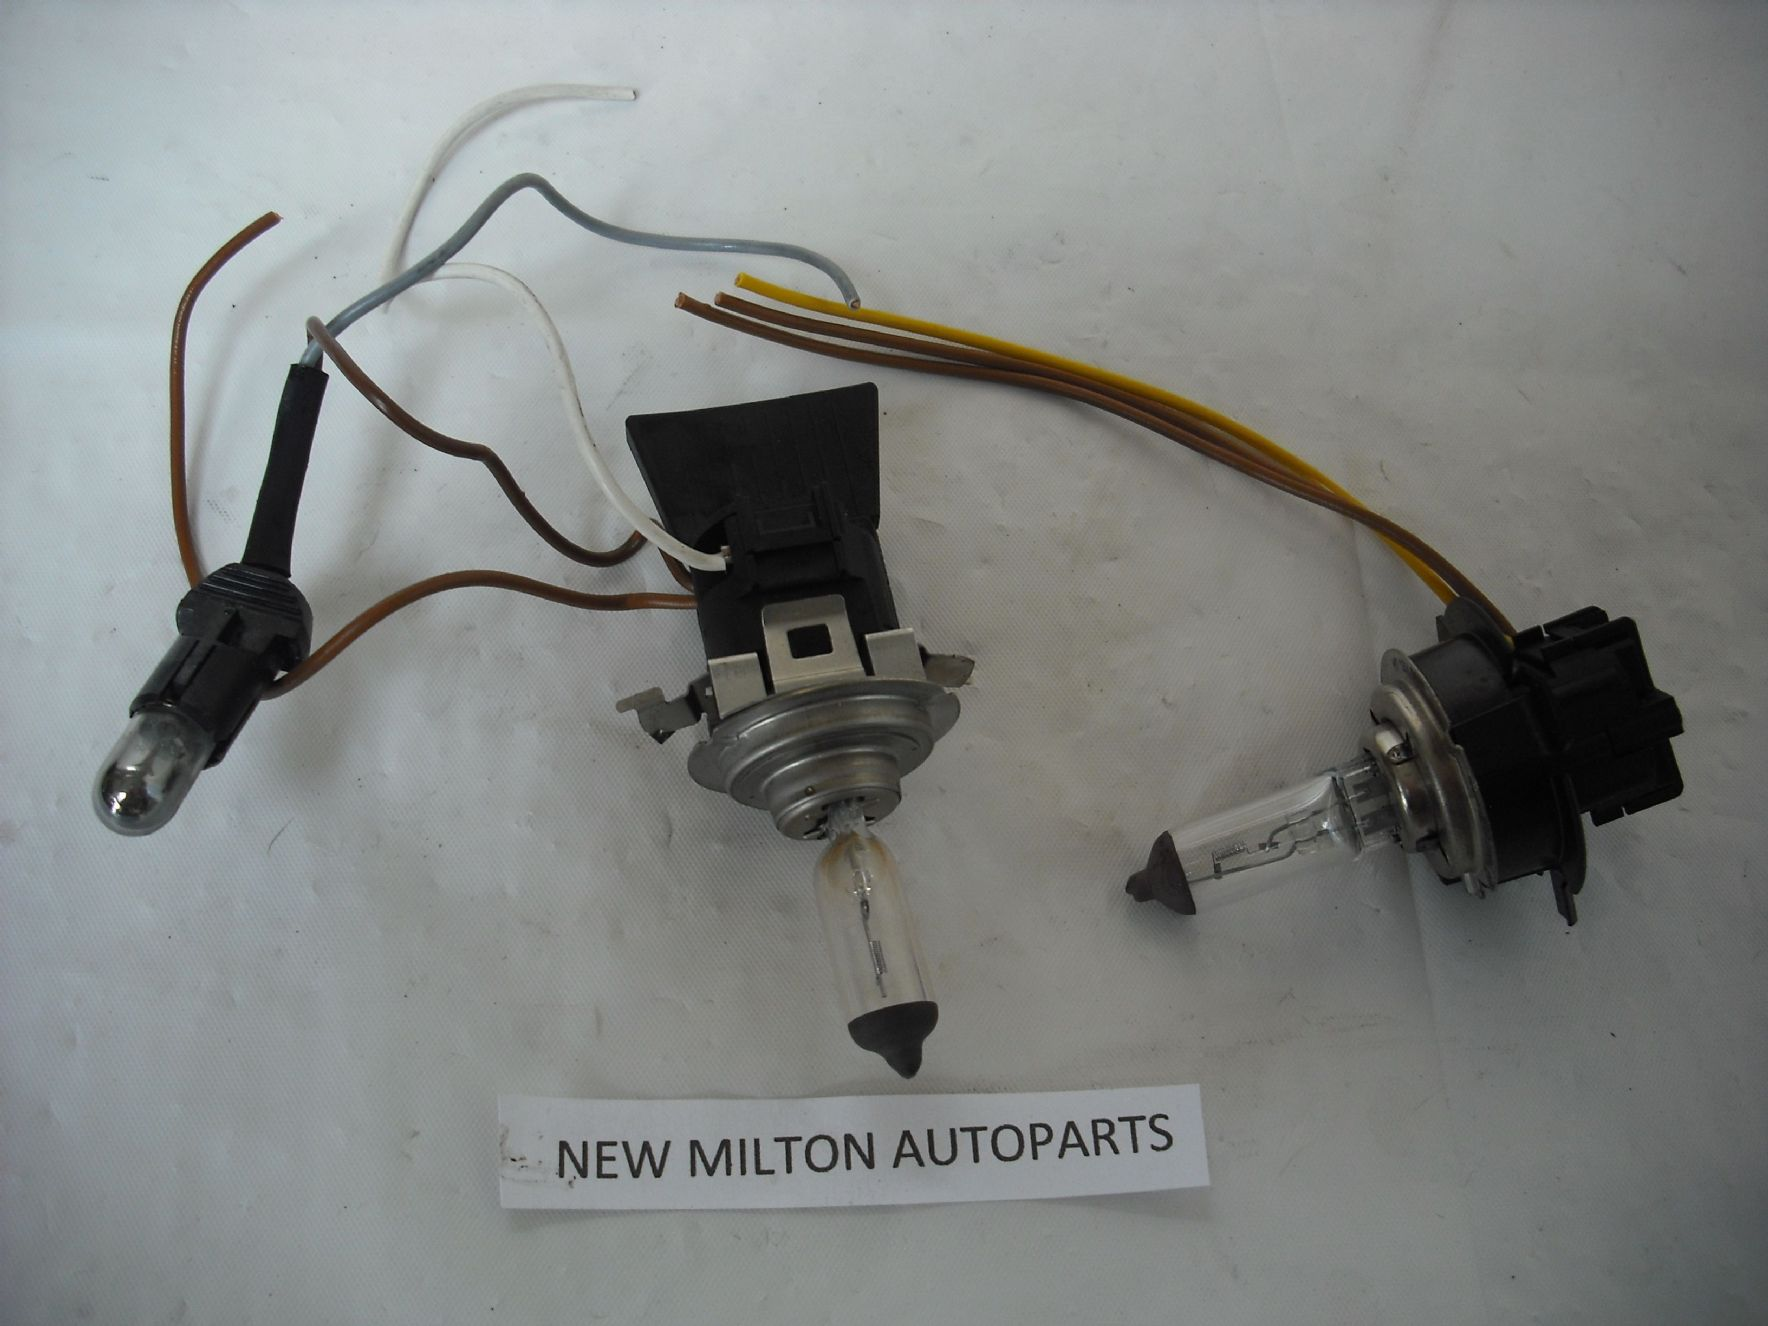 Saab 9 5 Headlight Wiring Another Blog About Diagram Whirlpool Dryer Model Wgd4800bq 93 3 2003 2007 Headlamp Bulb Sockets And